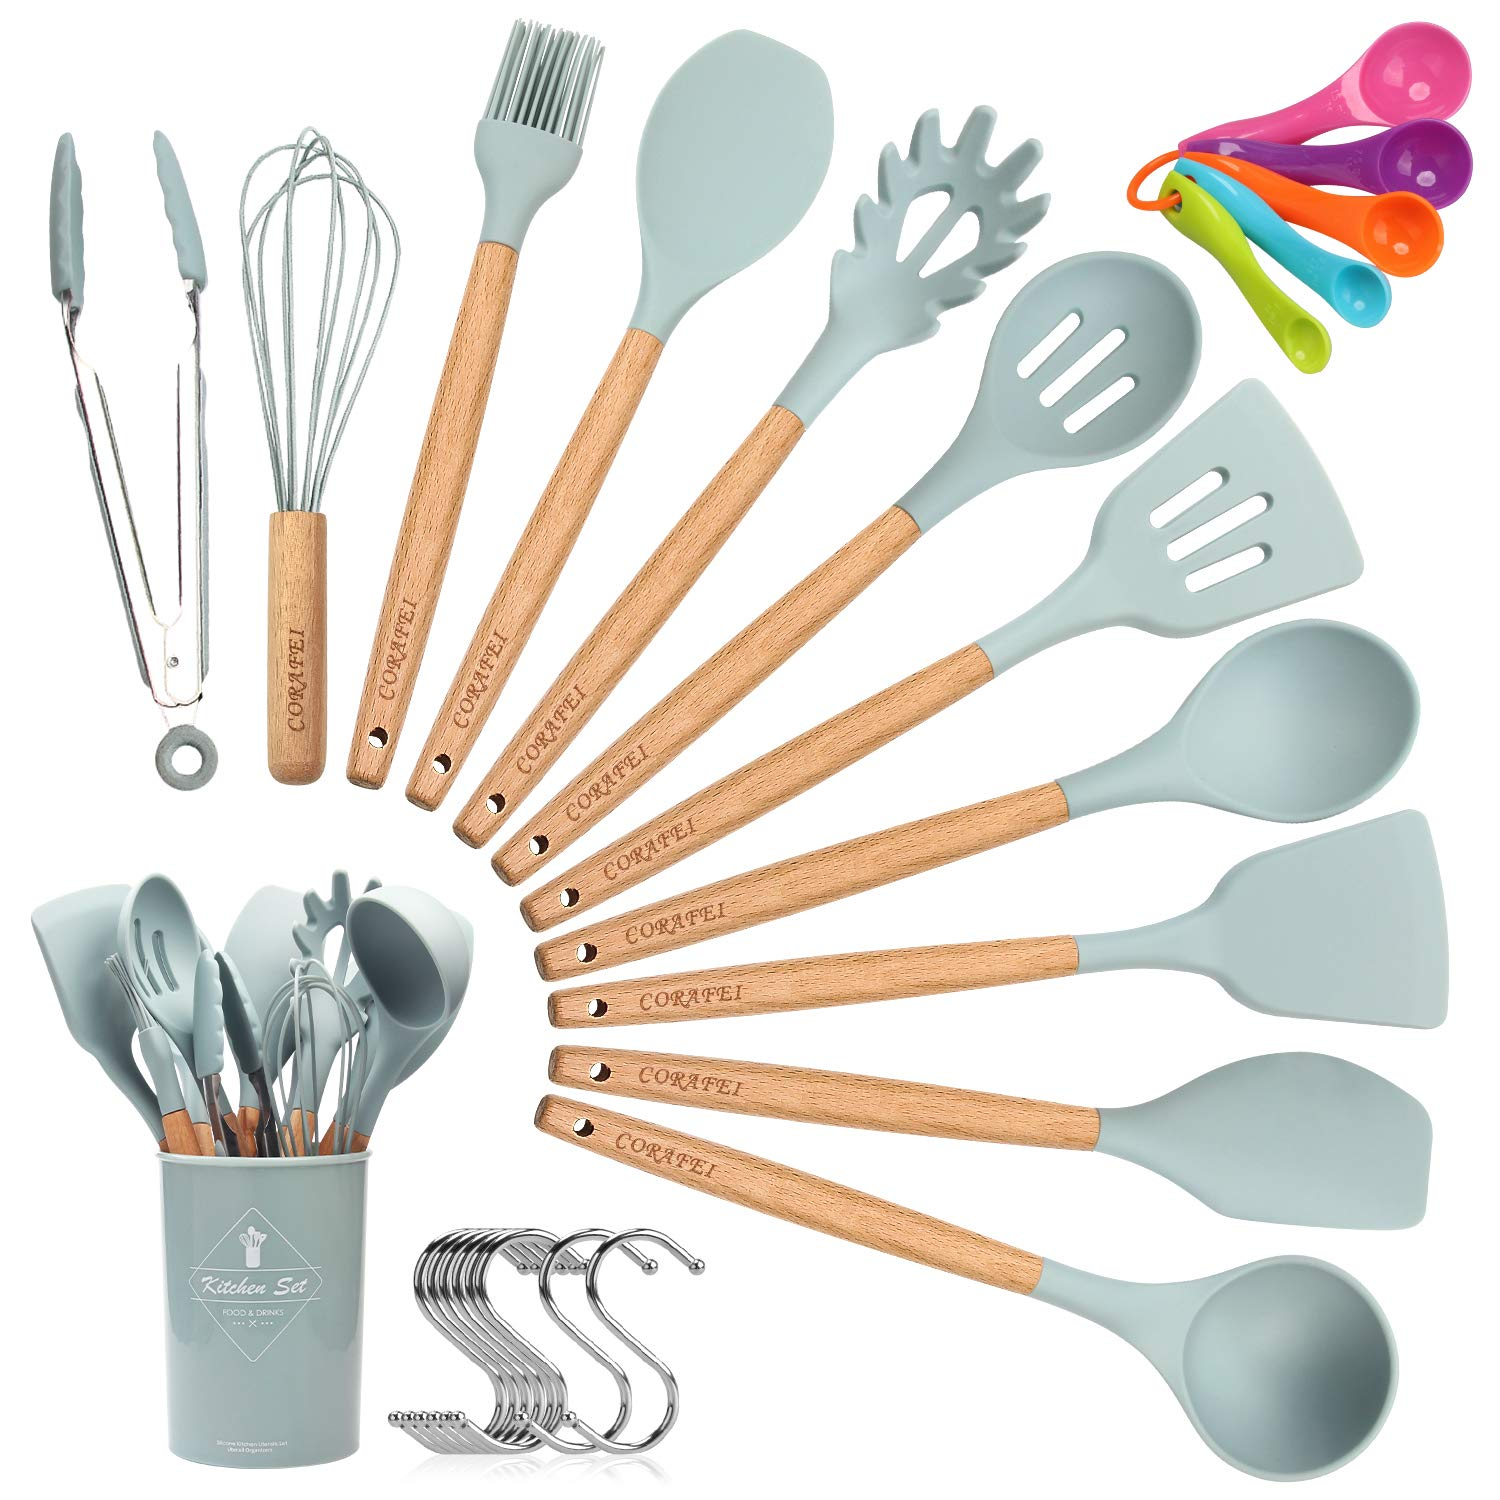 CORAFEI Silicone Cooking Kitchen 11 PCS Acacia Wooden Utensils Tool for  Nonstick Cookware,BPA Free, Non Toxic Turner Tongs Spatula Spoon Set with  ...